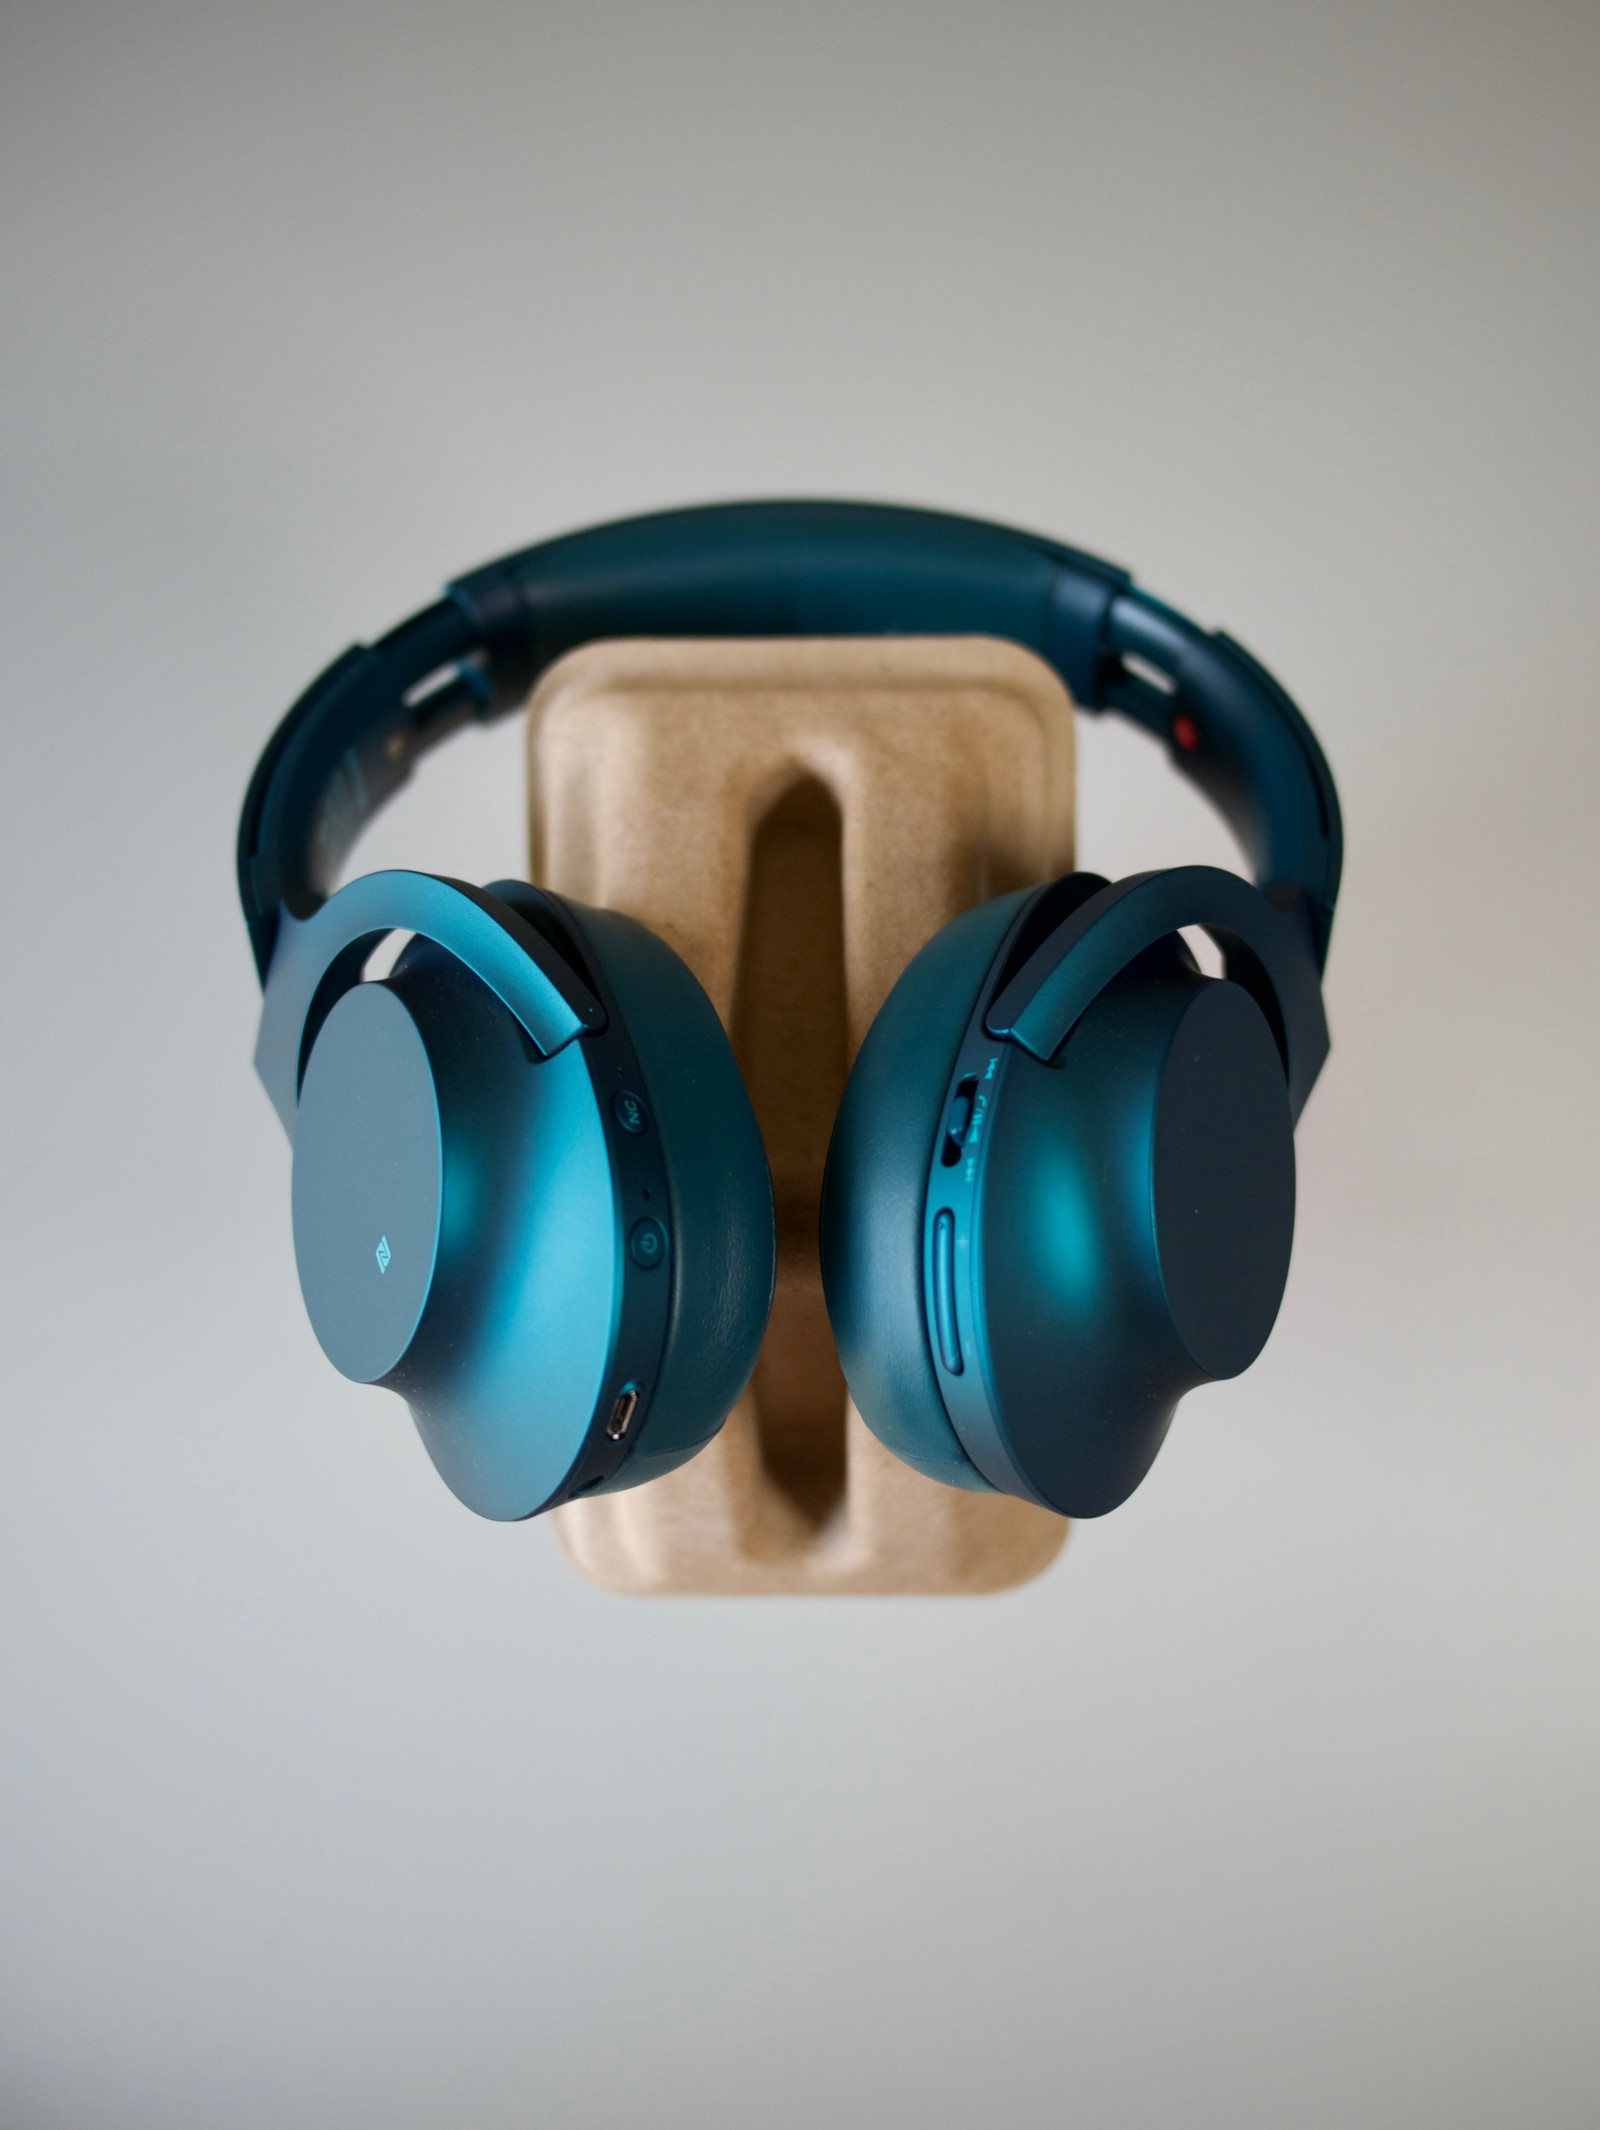 Sony Hear On Wireless Nc A Review Timmy Yong Medium Noice Cancelling Headphone Mdr 100abn Blue 1000x For Safer Look And Status As Far Flagships Go At The Moment But If You Want Bit Of Colours Pop In Your Life These Are